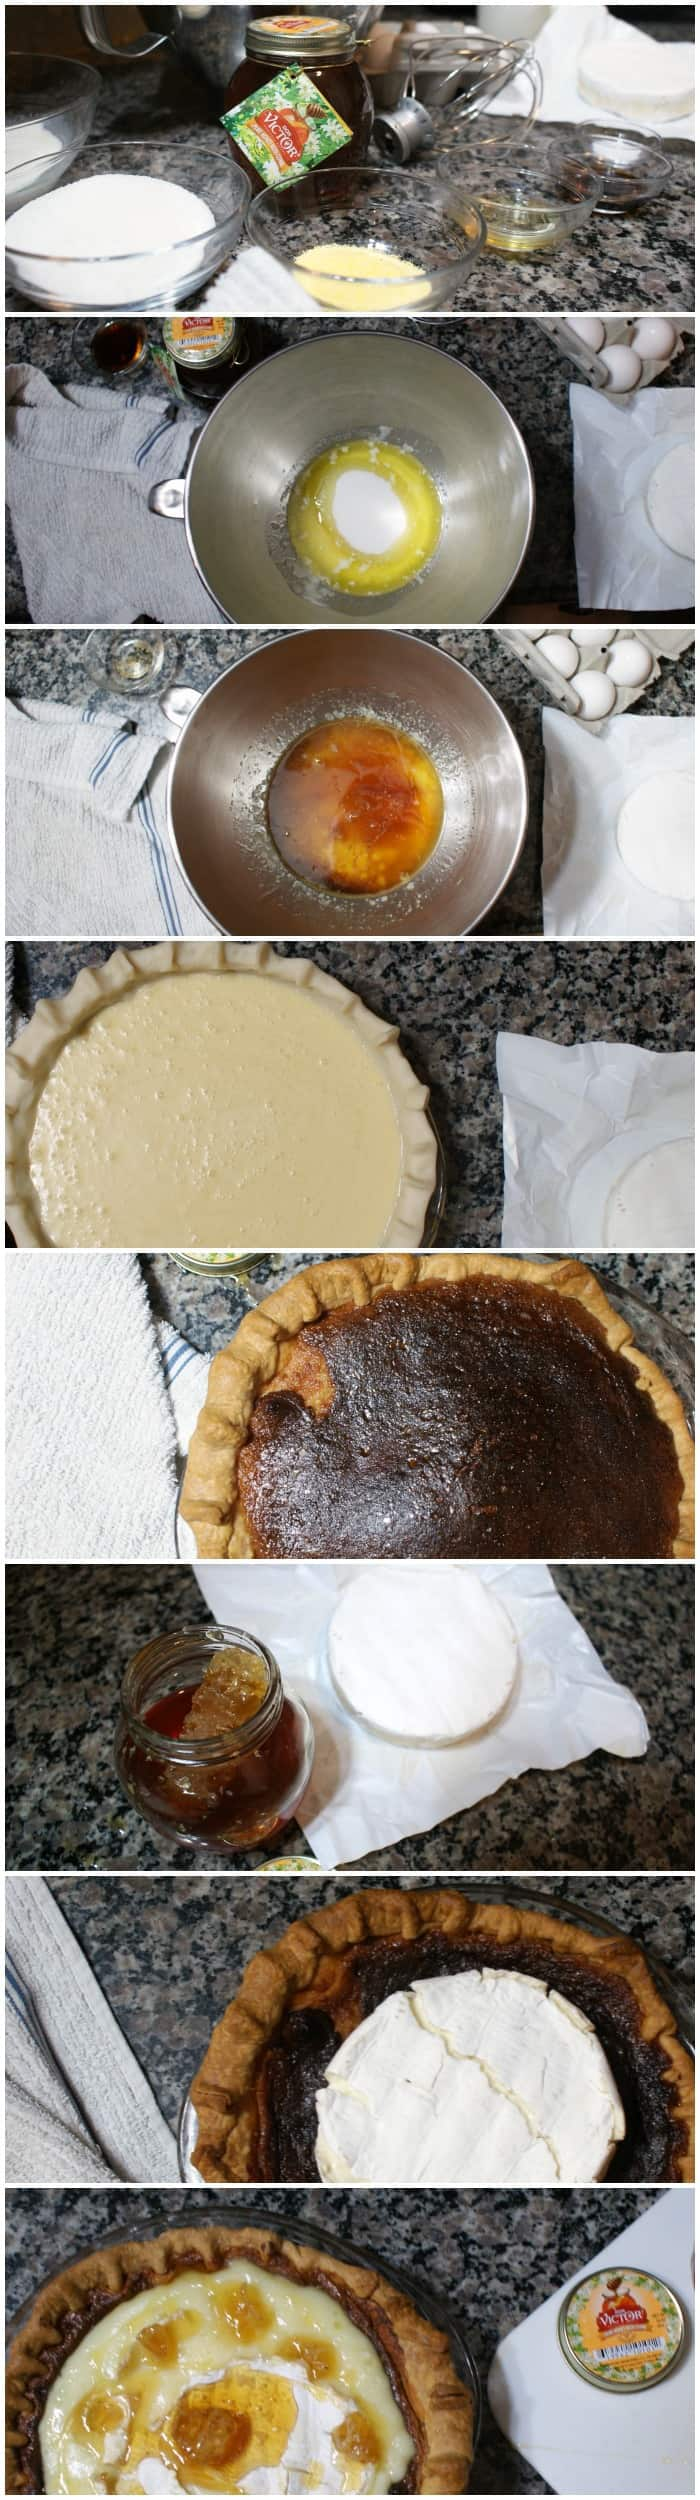 instructions for how to make a honey pie with brie